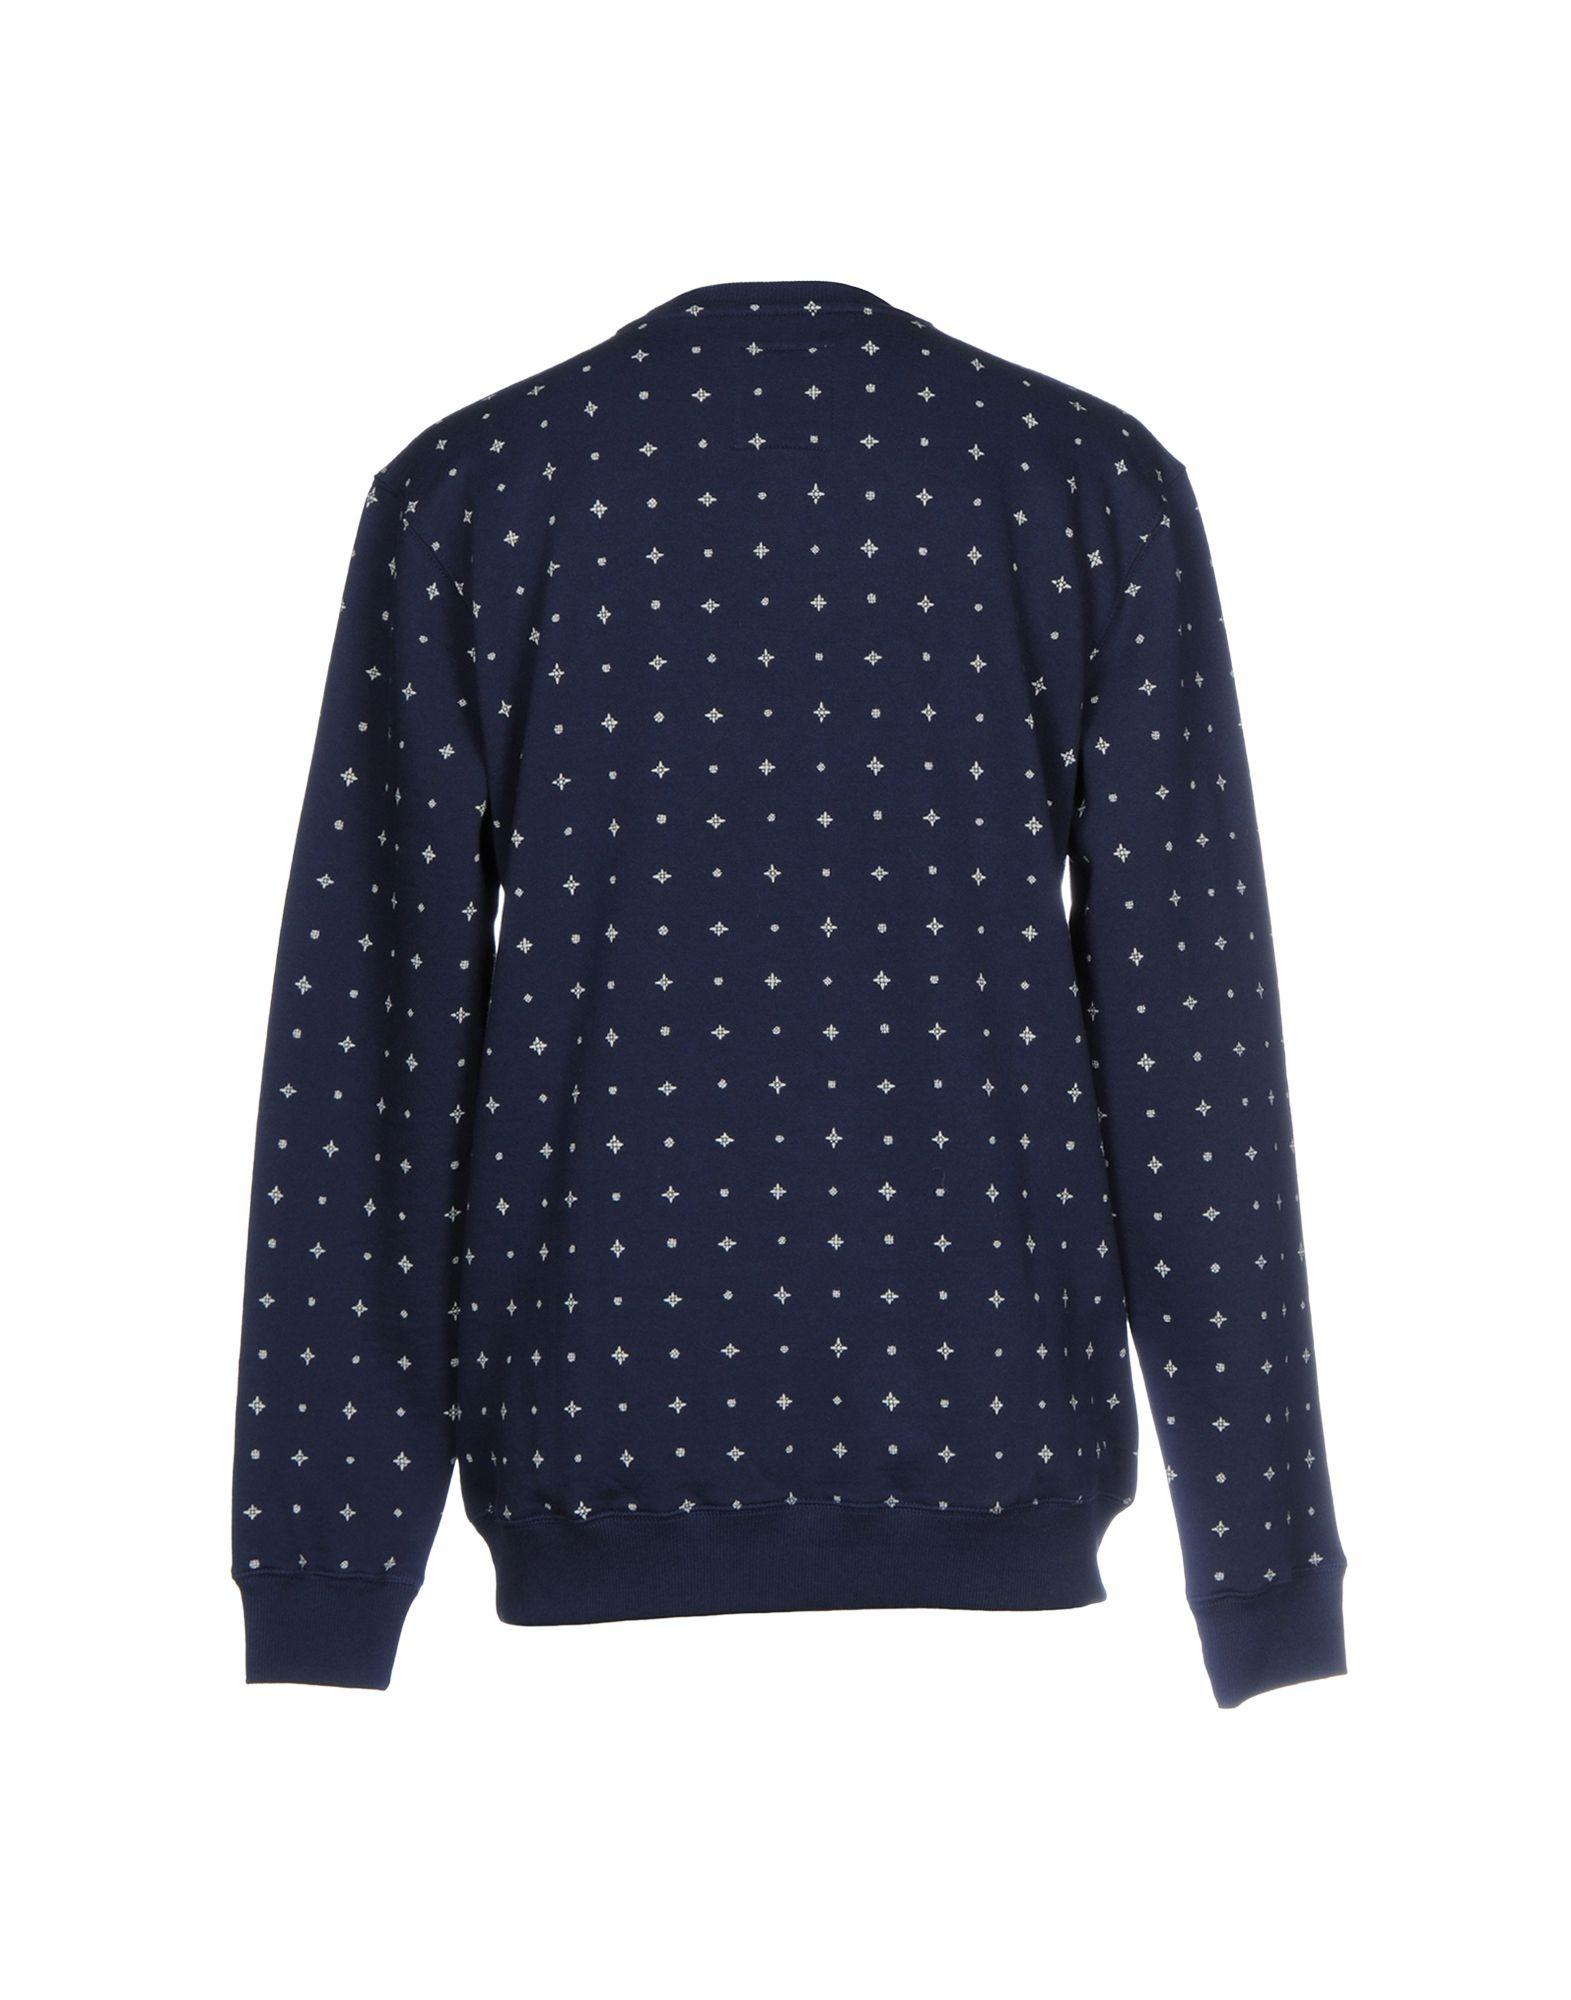 Vans sweatshirt in blue for men lyst for 20 34 35 dress shirts